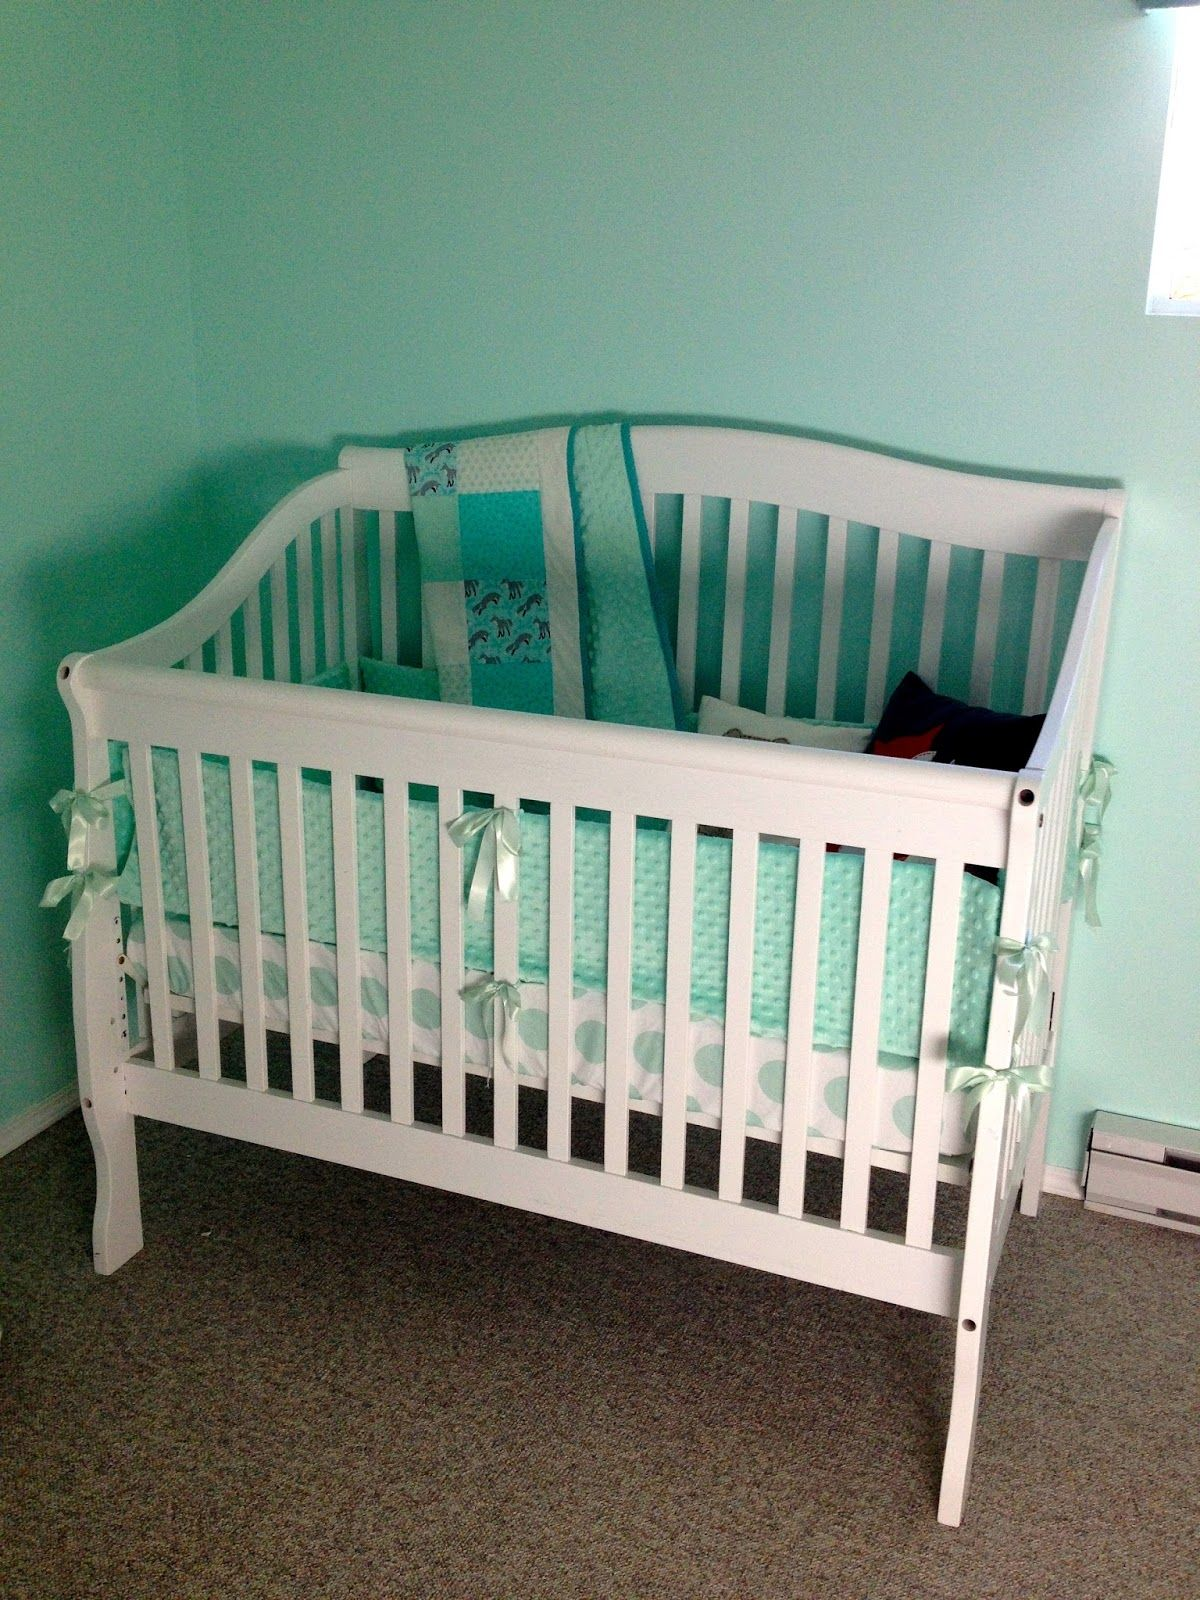 Explore Baby Crib, Baby Crafts, and more!